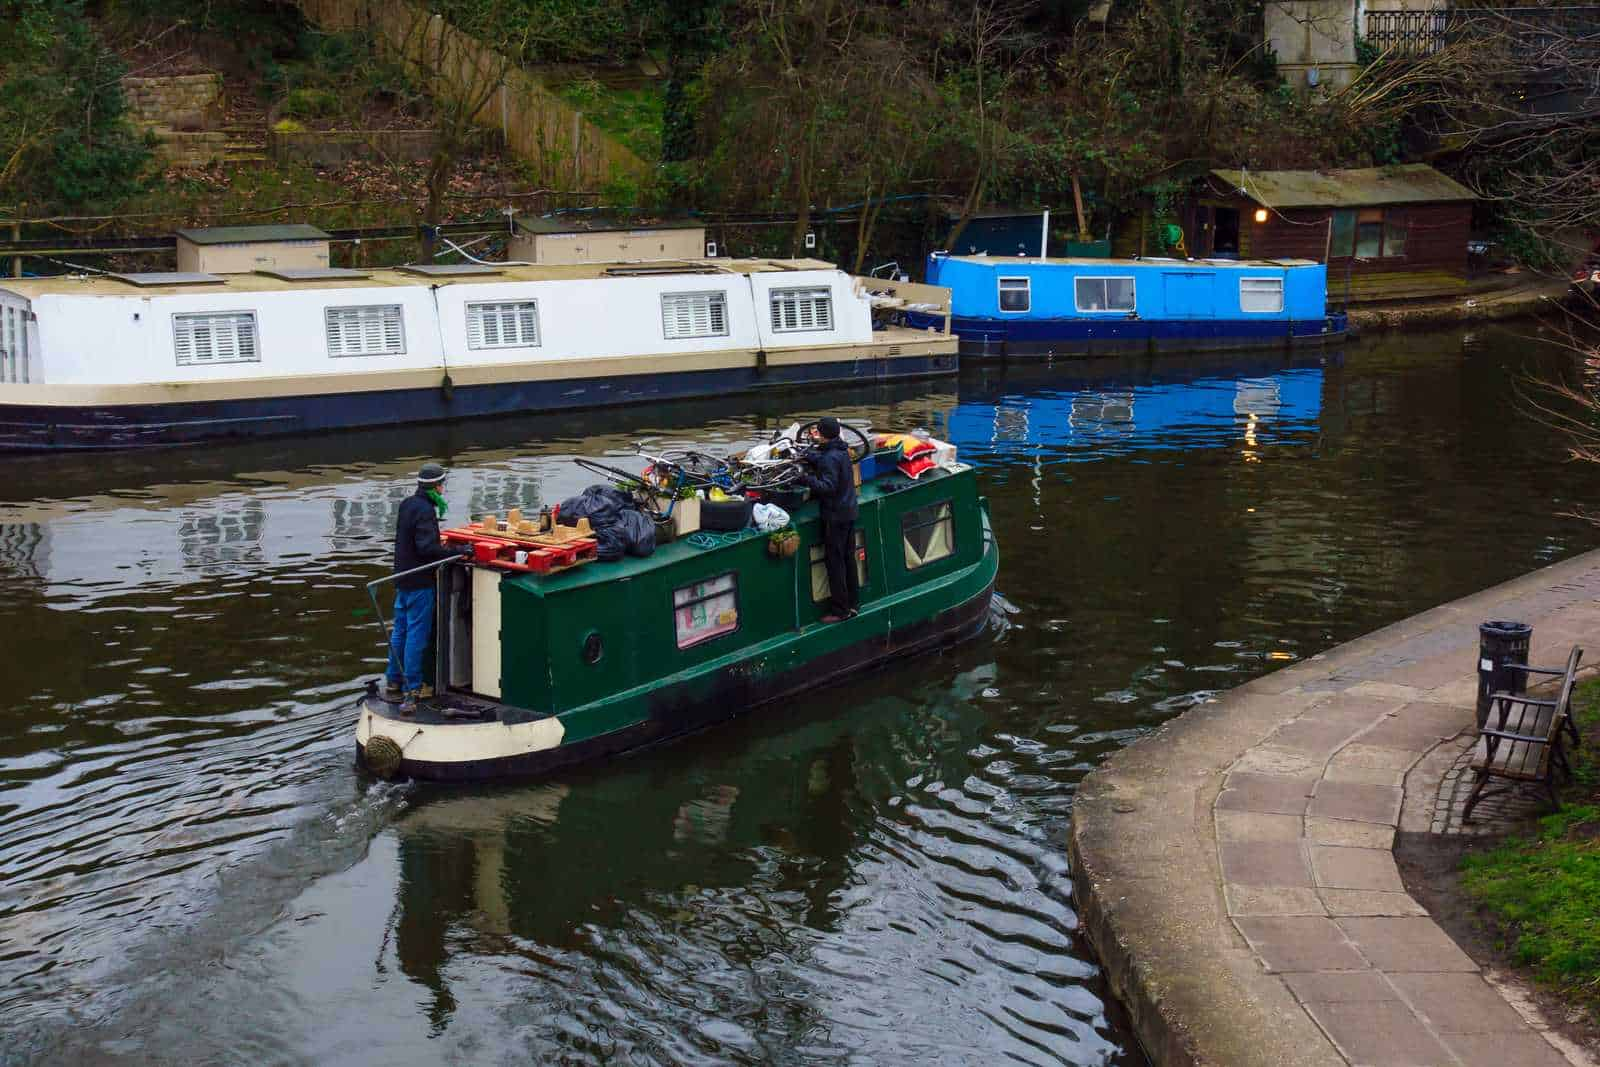 All about narrow boat water tanks!